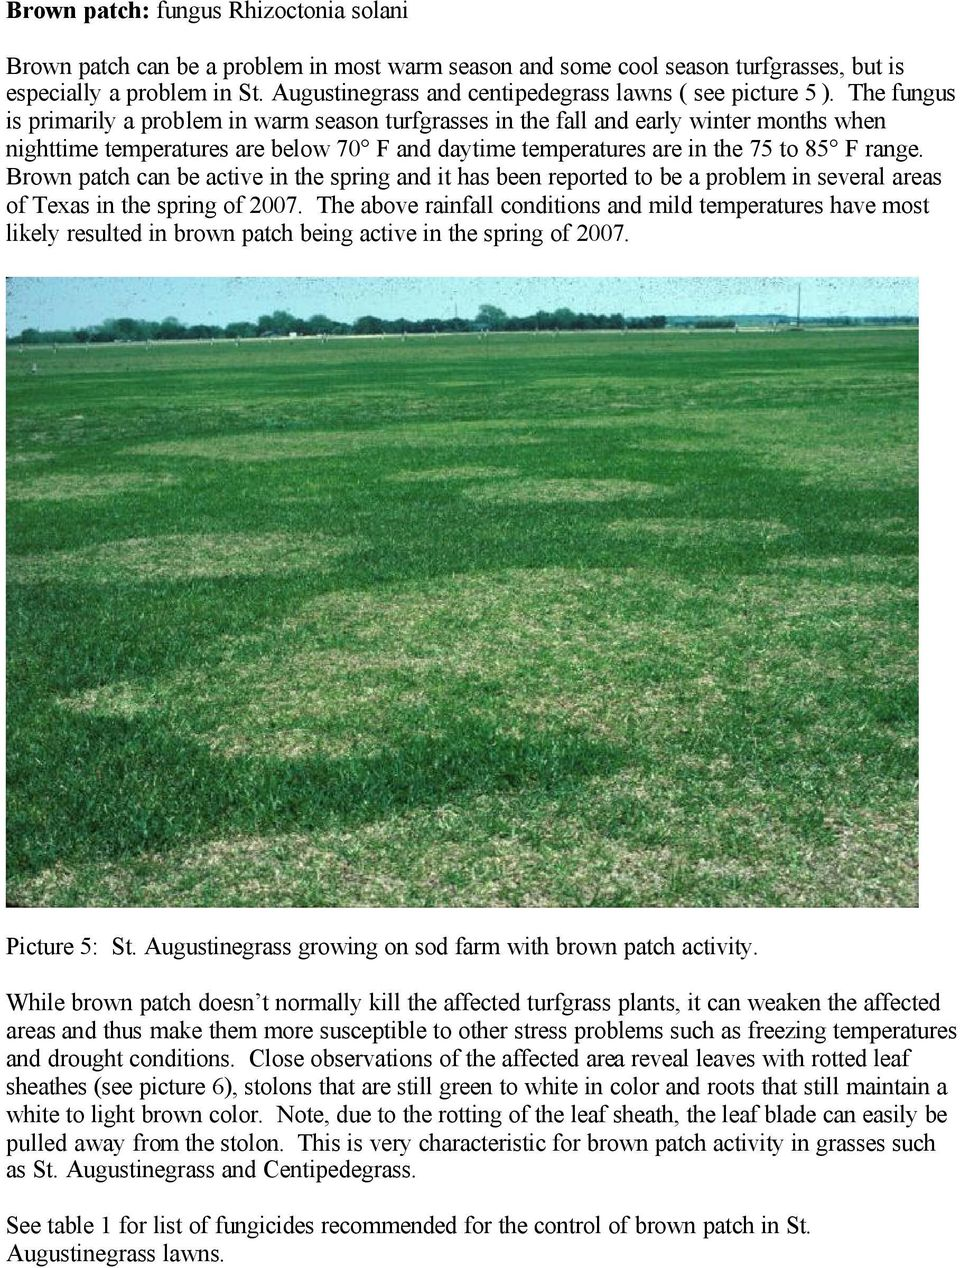 The fungus is primarily a problem in warm season turfgrasses in the fall and early winter months when nighttime temperatures are below 70 F and daytime temperatures are in the 75 to 85 F range.